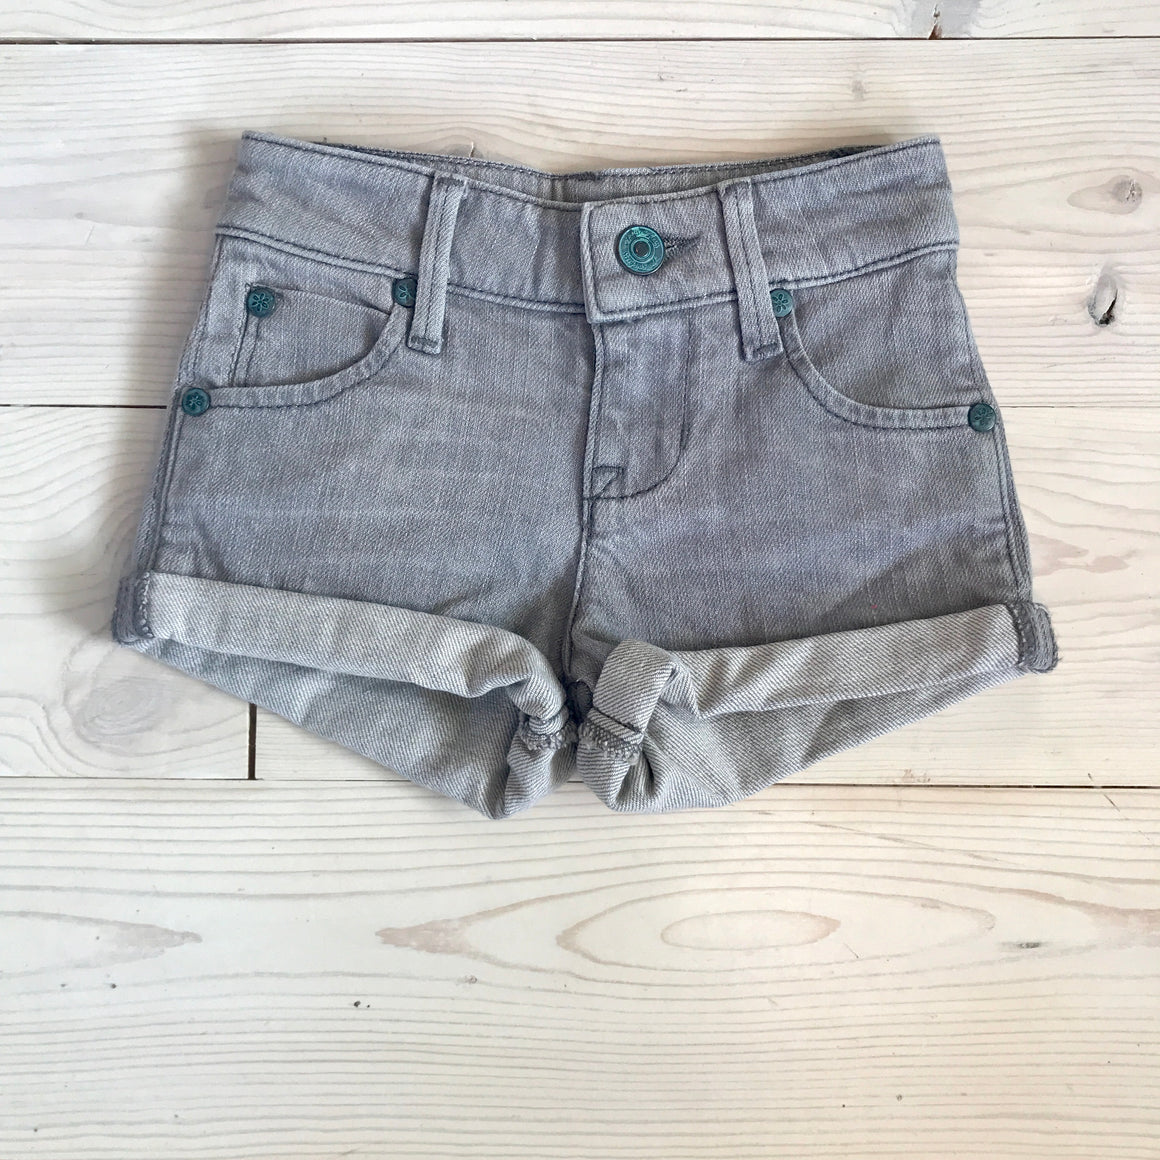 Edie Short - Gray Denim - Spring 16 Sample - Size 3